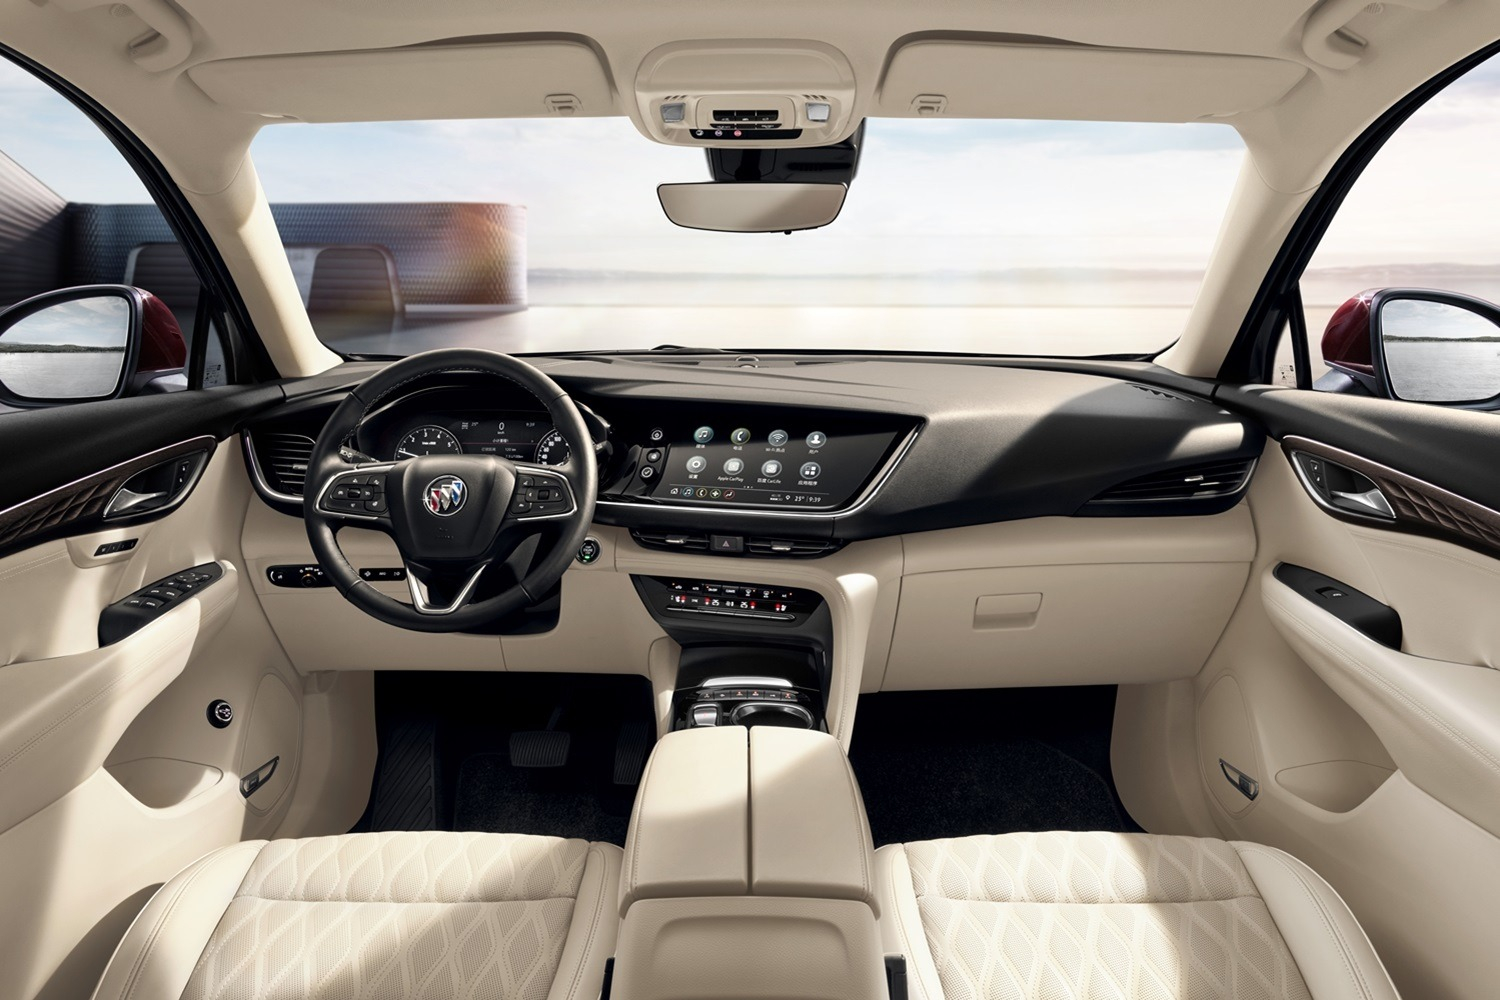 2021 Buick Envision Interior Revealed In Brand New Photos 2021 Buick Riviera Engine, History, Dashboard